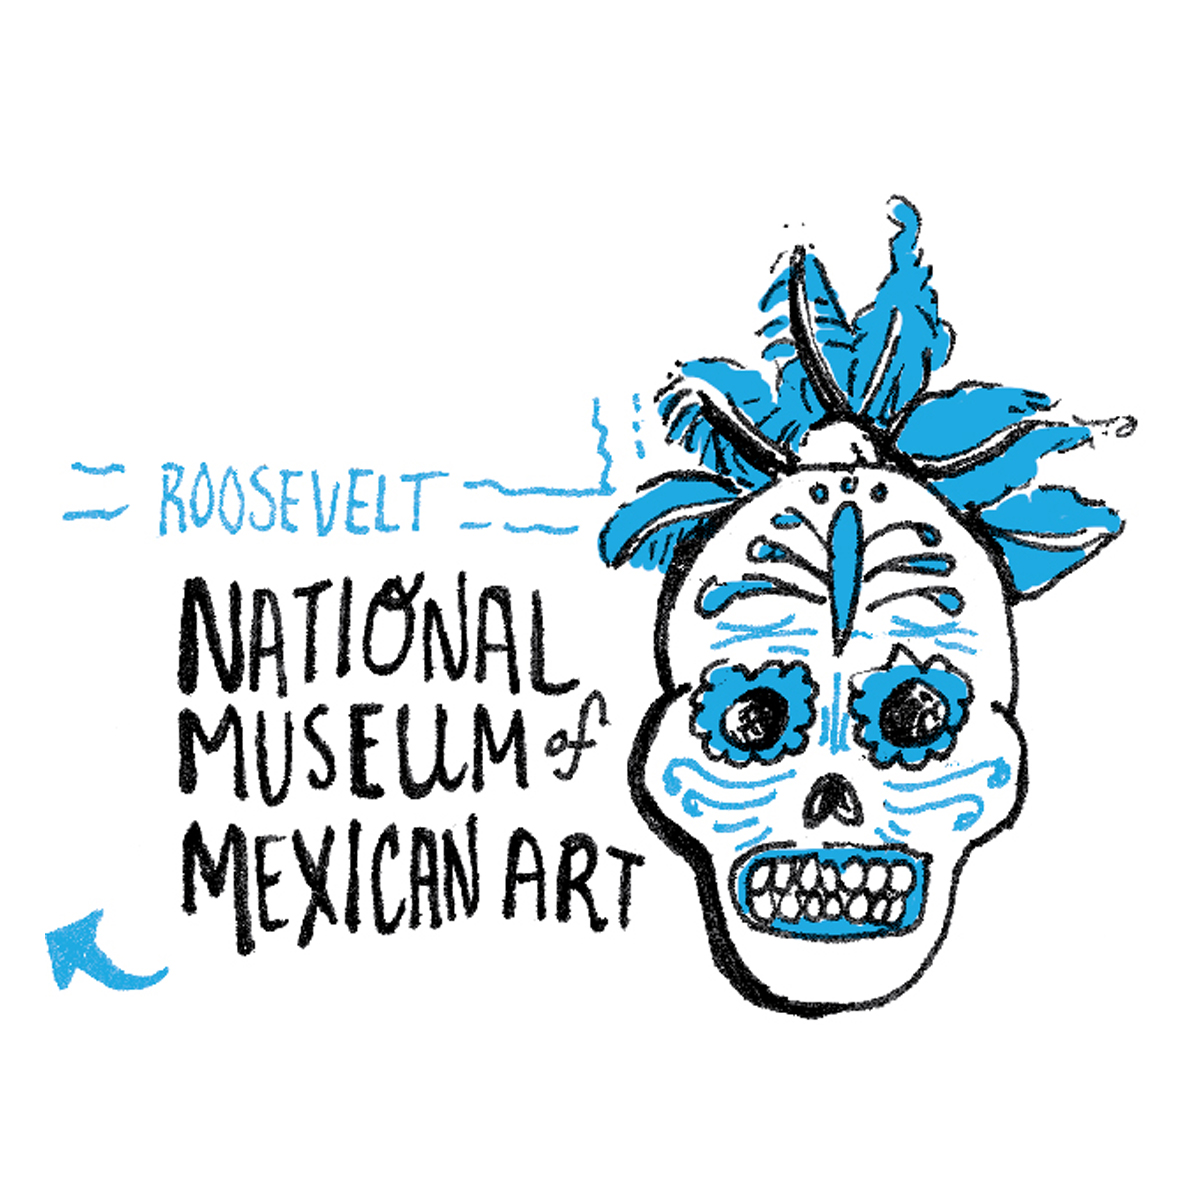 illustration of the Chicago national museum of mexican art